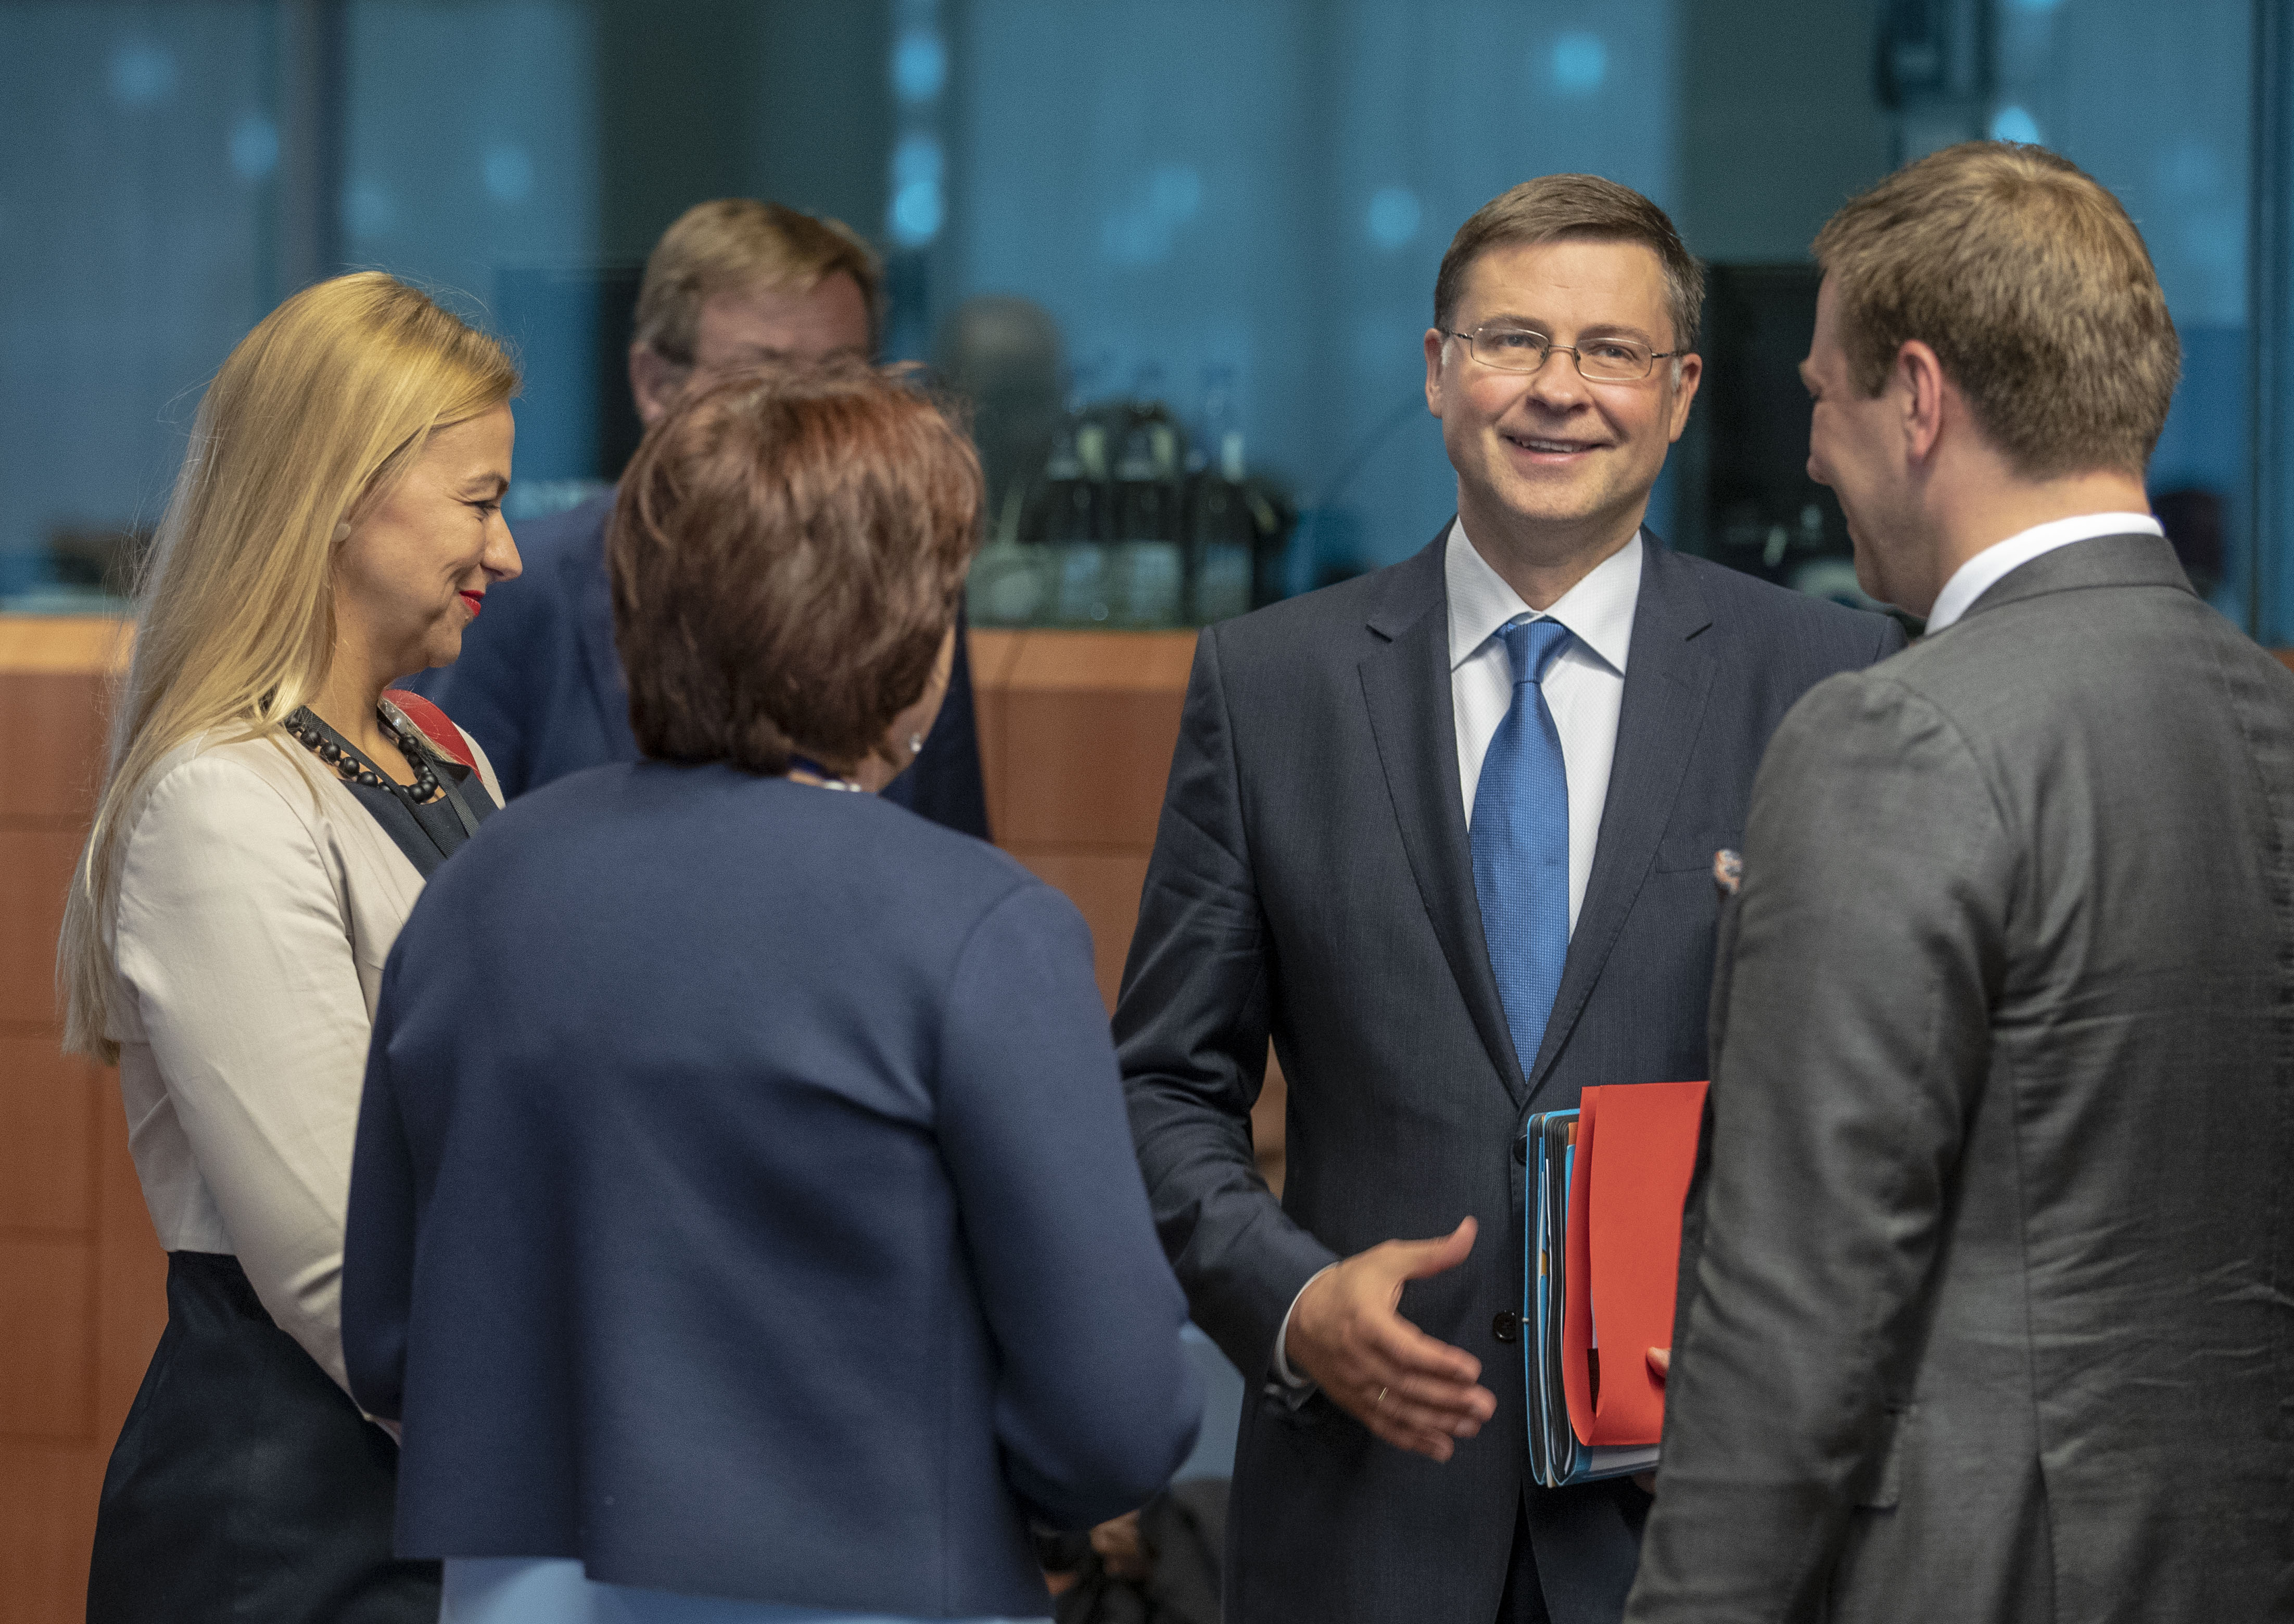 Mr Valdis DOMBROVSKIS, Vice-President of the European Commission in charge of the Euro and Social Dialogue.